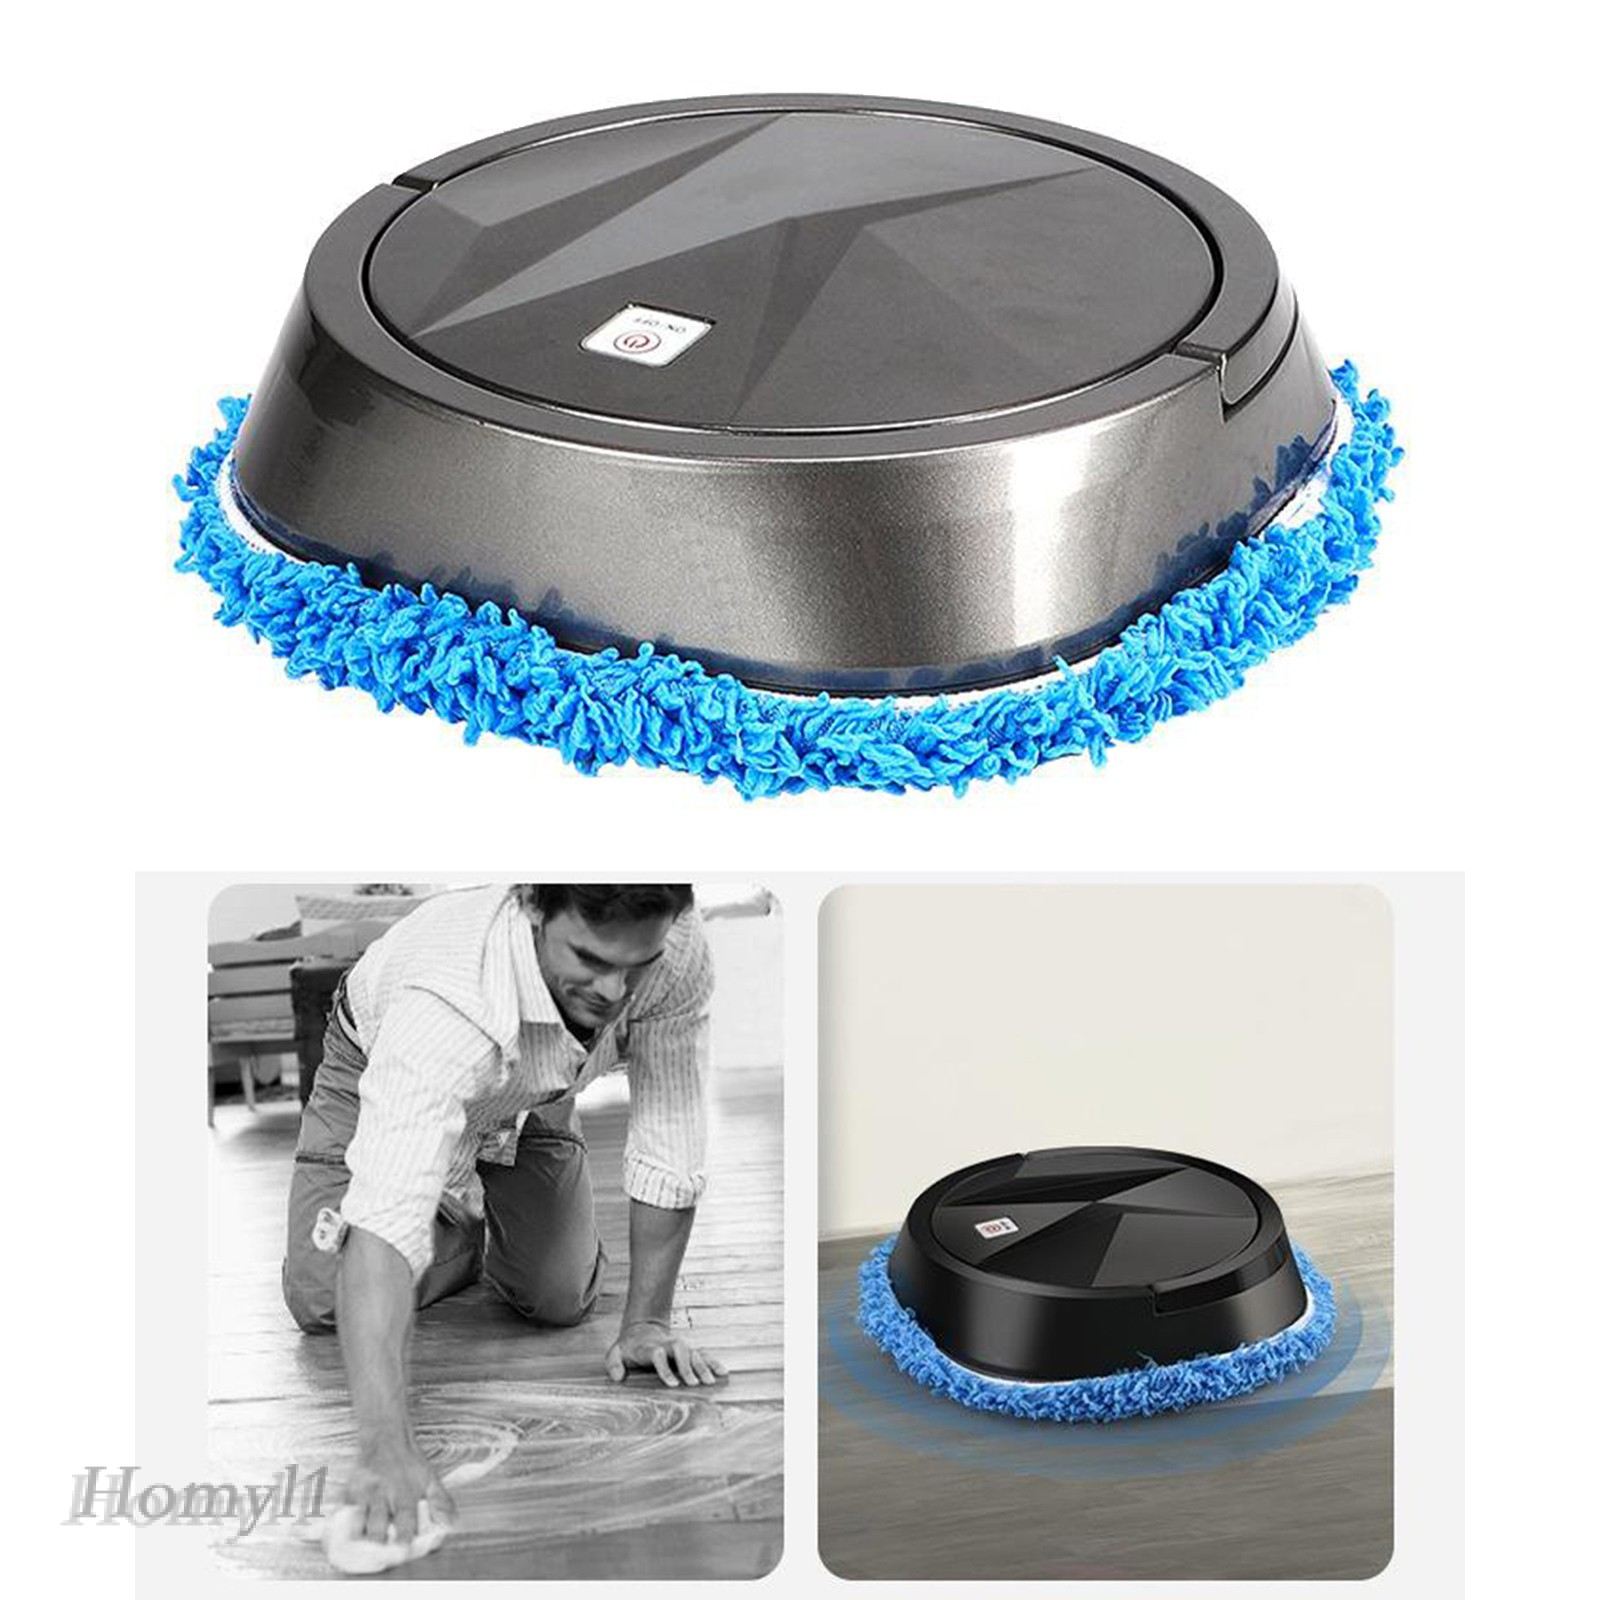 Homyl1 Automatic Floor Cleaning Sweeping Robot Vacuum Cleaner Floor Sweeper Mop Machine Shopee Malaysia